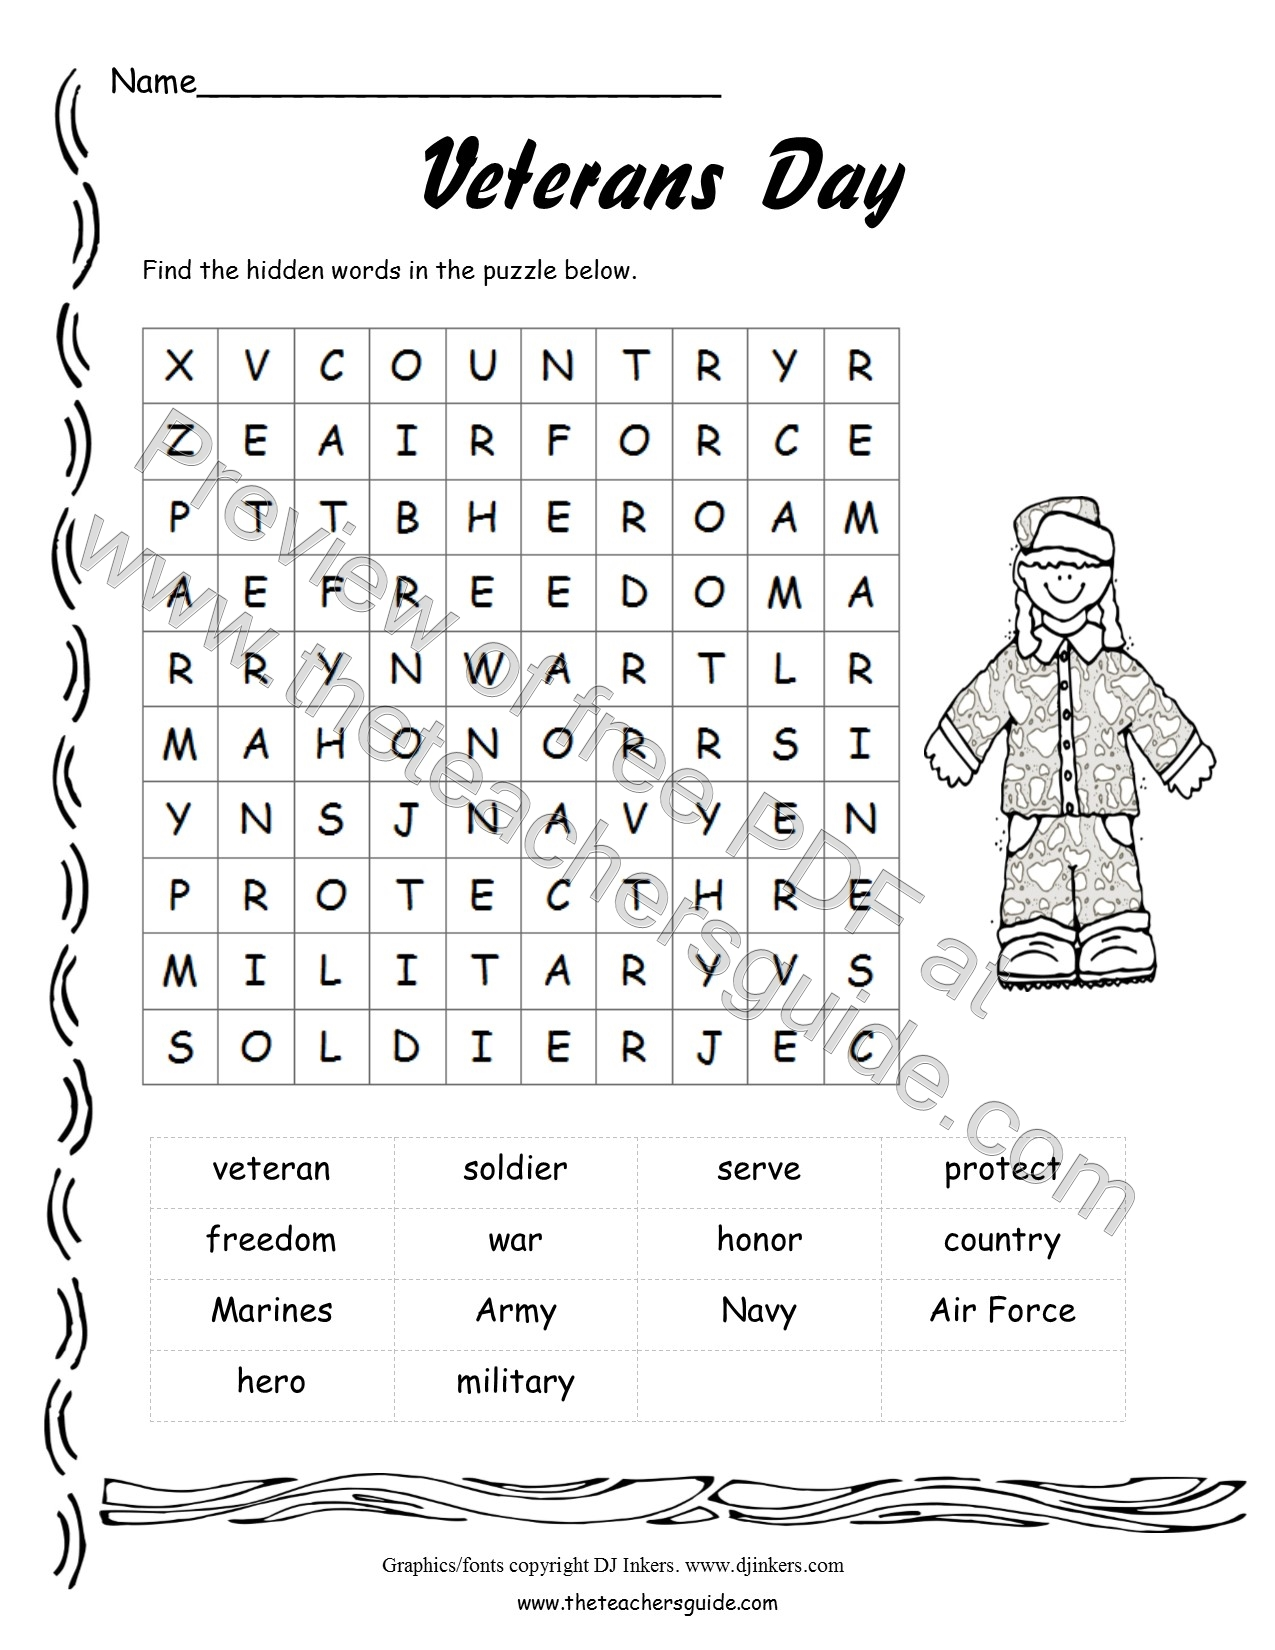 Coloring Pages Veterans Coloring Pages Free veterans day lesson plans themes printouts crafts wordsearch